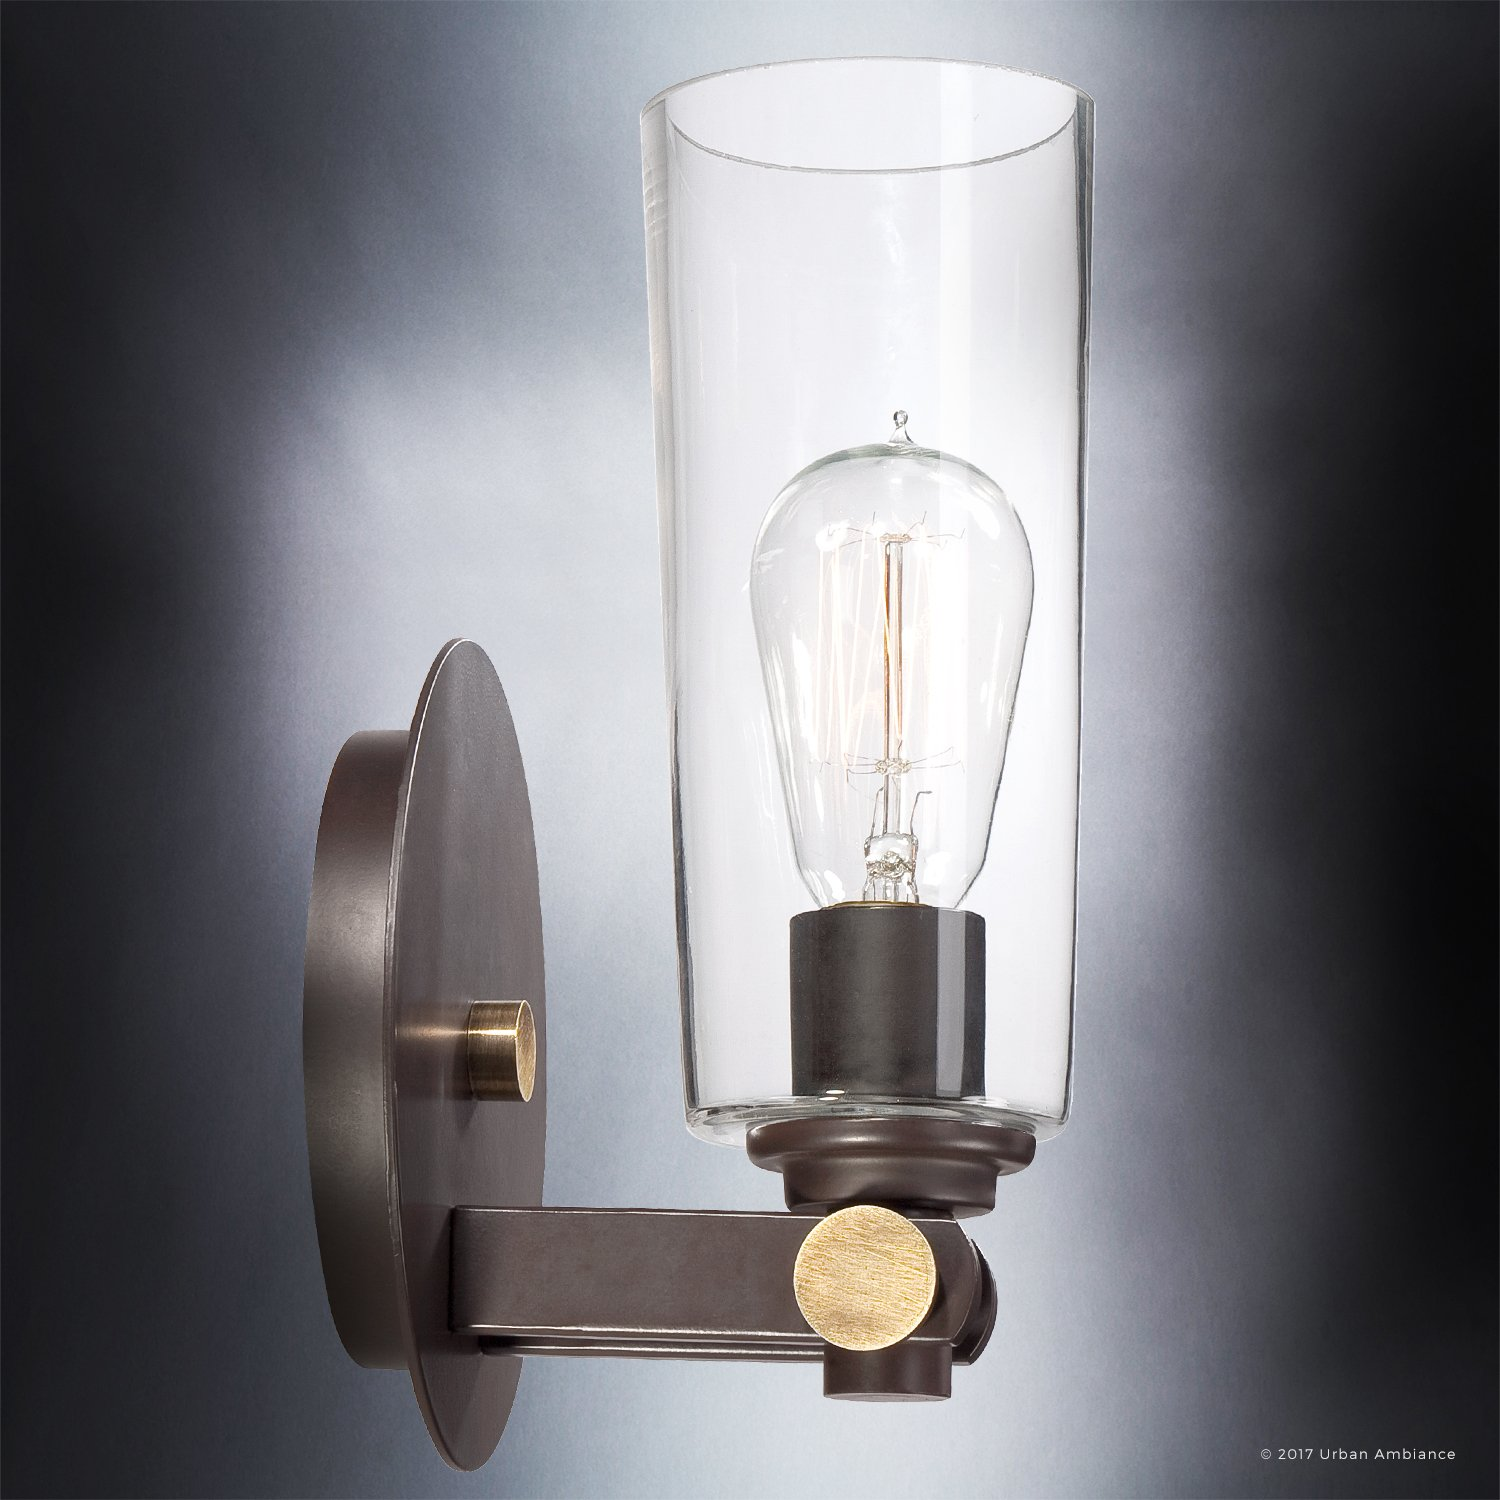 Luxury Vintage Indoor Wall Light, Small Size: 11''H x 6.5''W, with Casual Style Elements, Retro Design, Elegant Estate Bronze Finish and Clear Glass, Includes Edison Bulb, UQL2690 by Urban Ambiance by Urban Ambiance (Image #5)